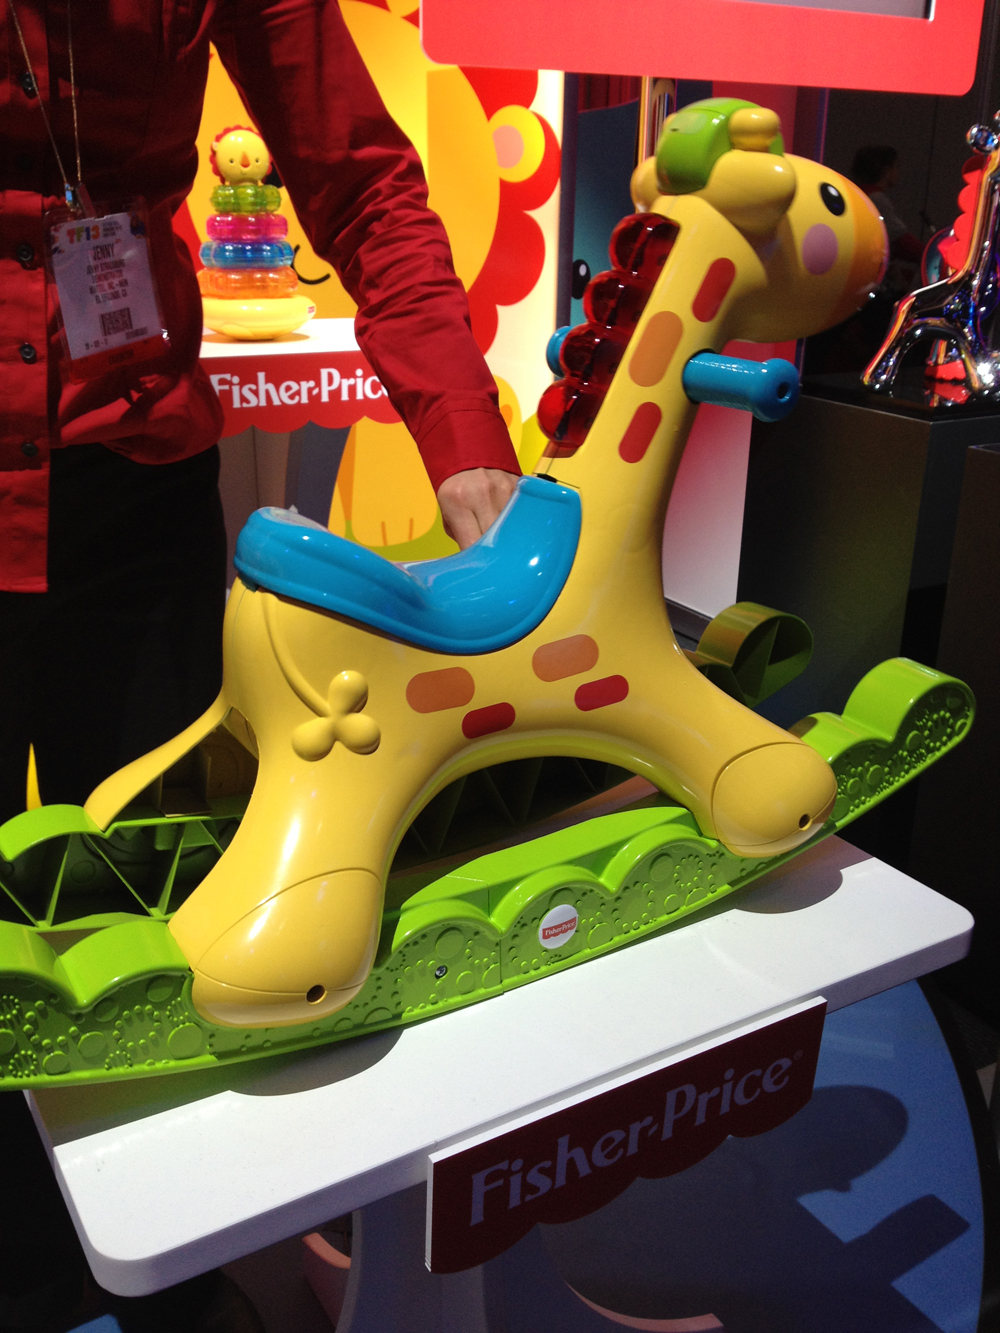 Fisher-Price's iconic giraffe gets the rocker treatment with this cute toy.